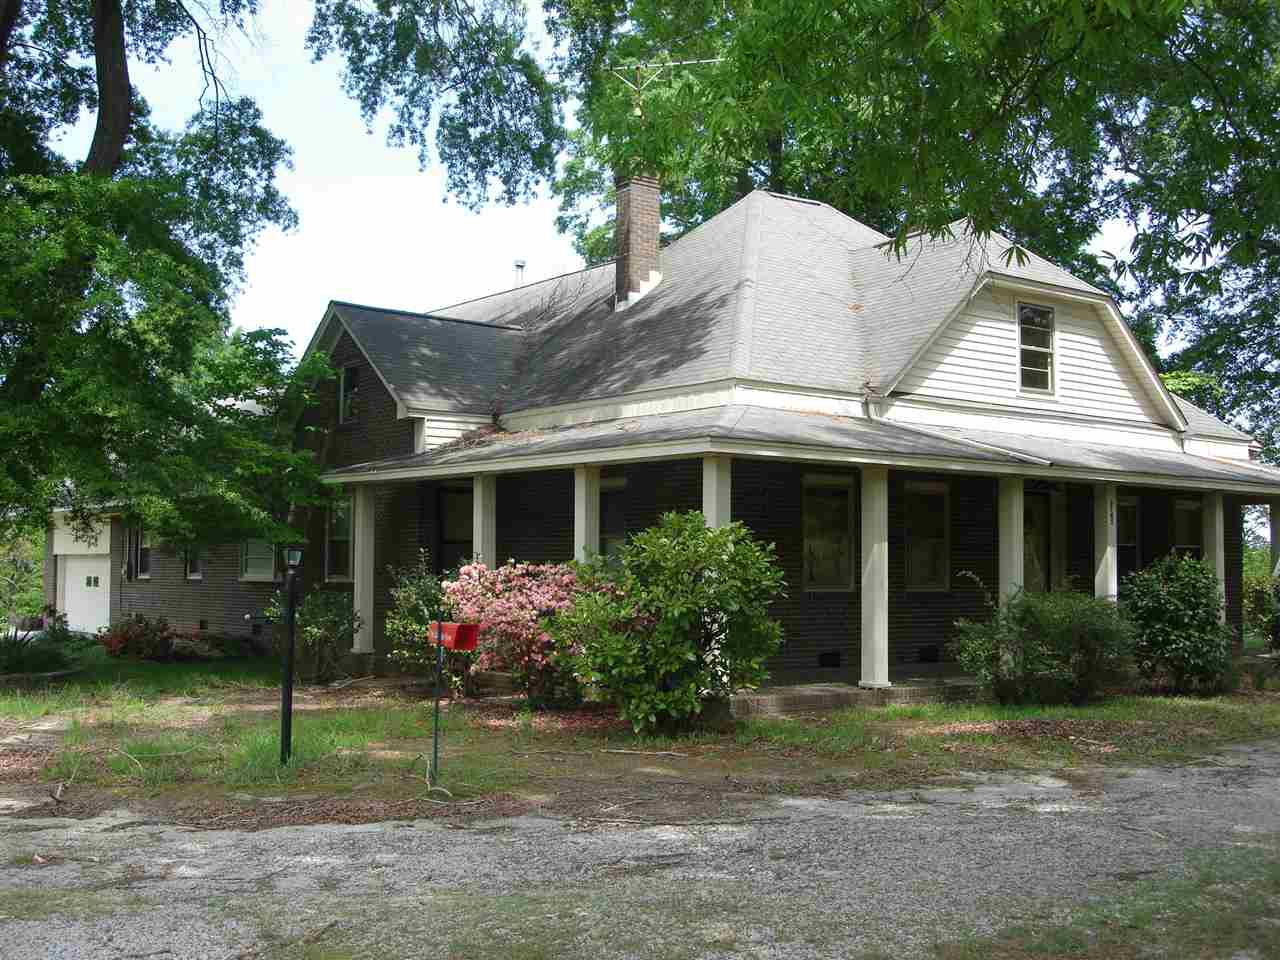 Single Family Home for Sale, ListingId:33135330, location: 6745 Kershaw Camden Hwy Kershaw 29067